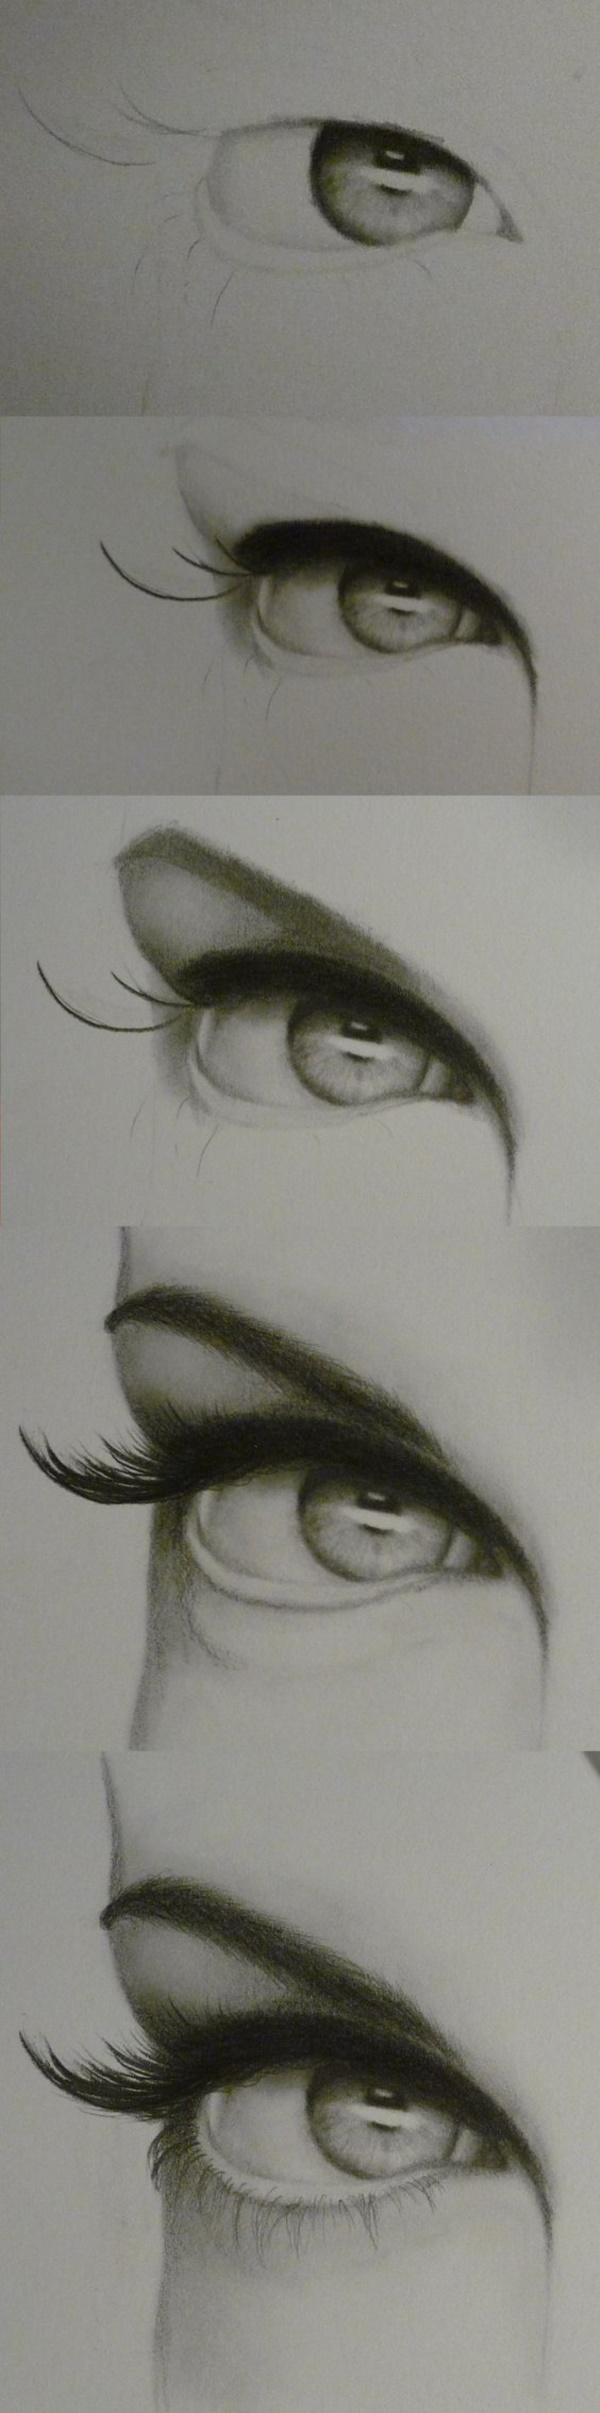 how-to-draw-an-eye0341